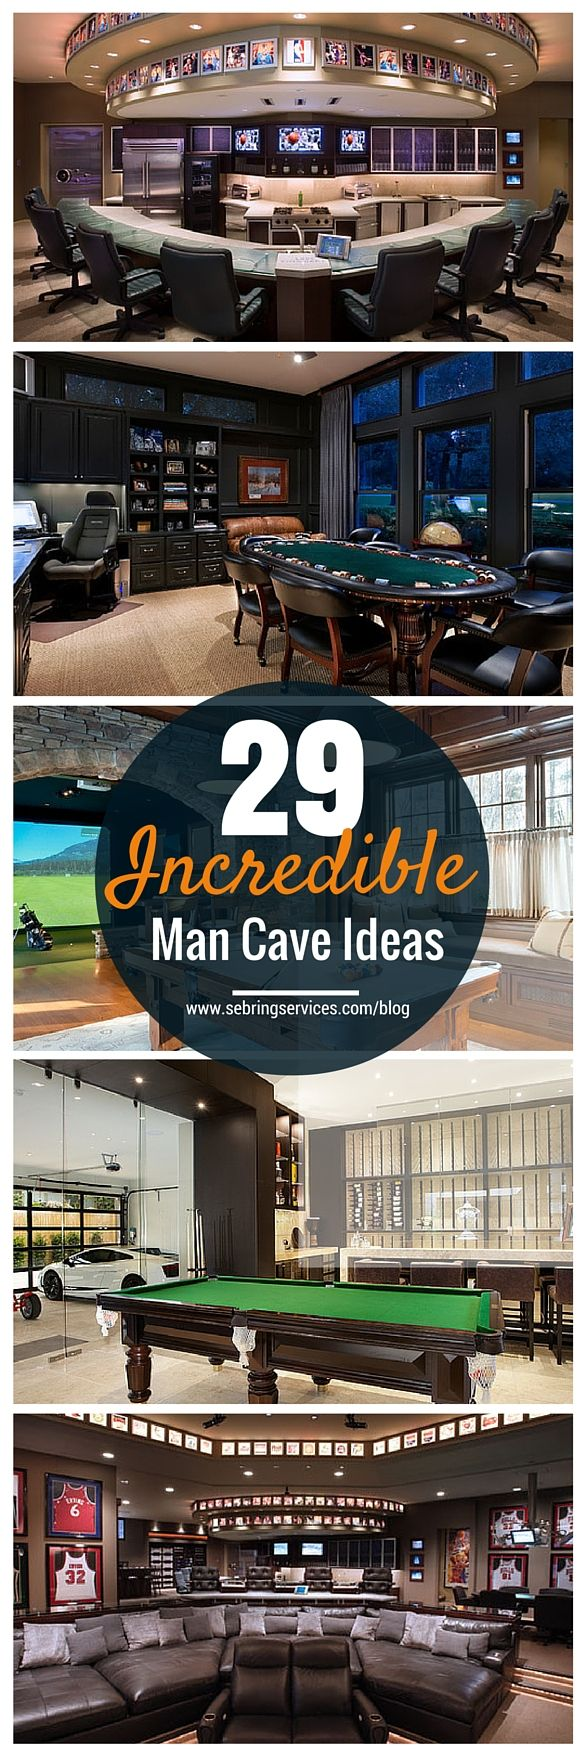 A man cave is a personal sanctuary where you can indulge your hobbies and guilty pleasures with freedom. It provides personal space for much needed me-time especially if you have a big family and busy days. The best thing about it is that you have complete control over the aesthetics. So however crazy or unique you want the design to be, you can have it all.